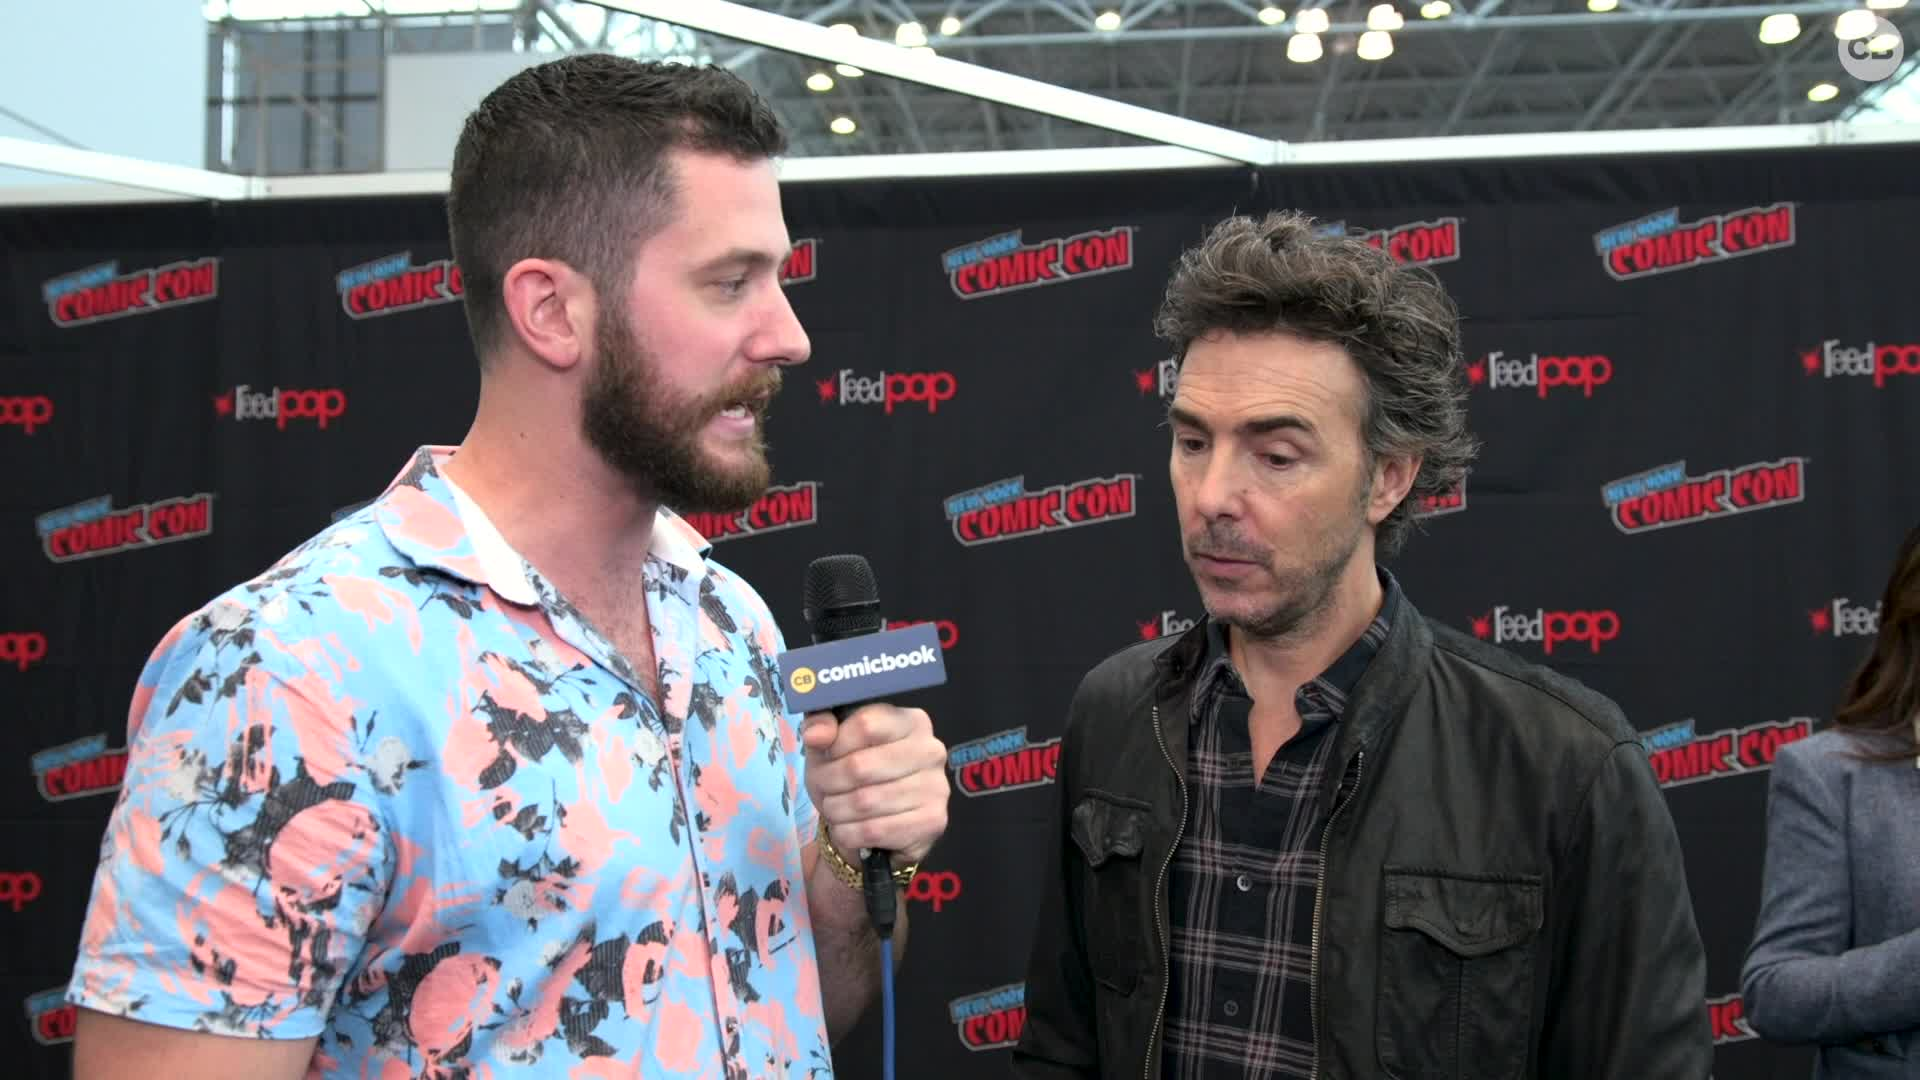 Shawn Levy - NYCC 2019 Exclusive Interview screen capture